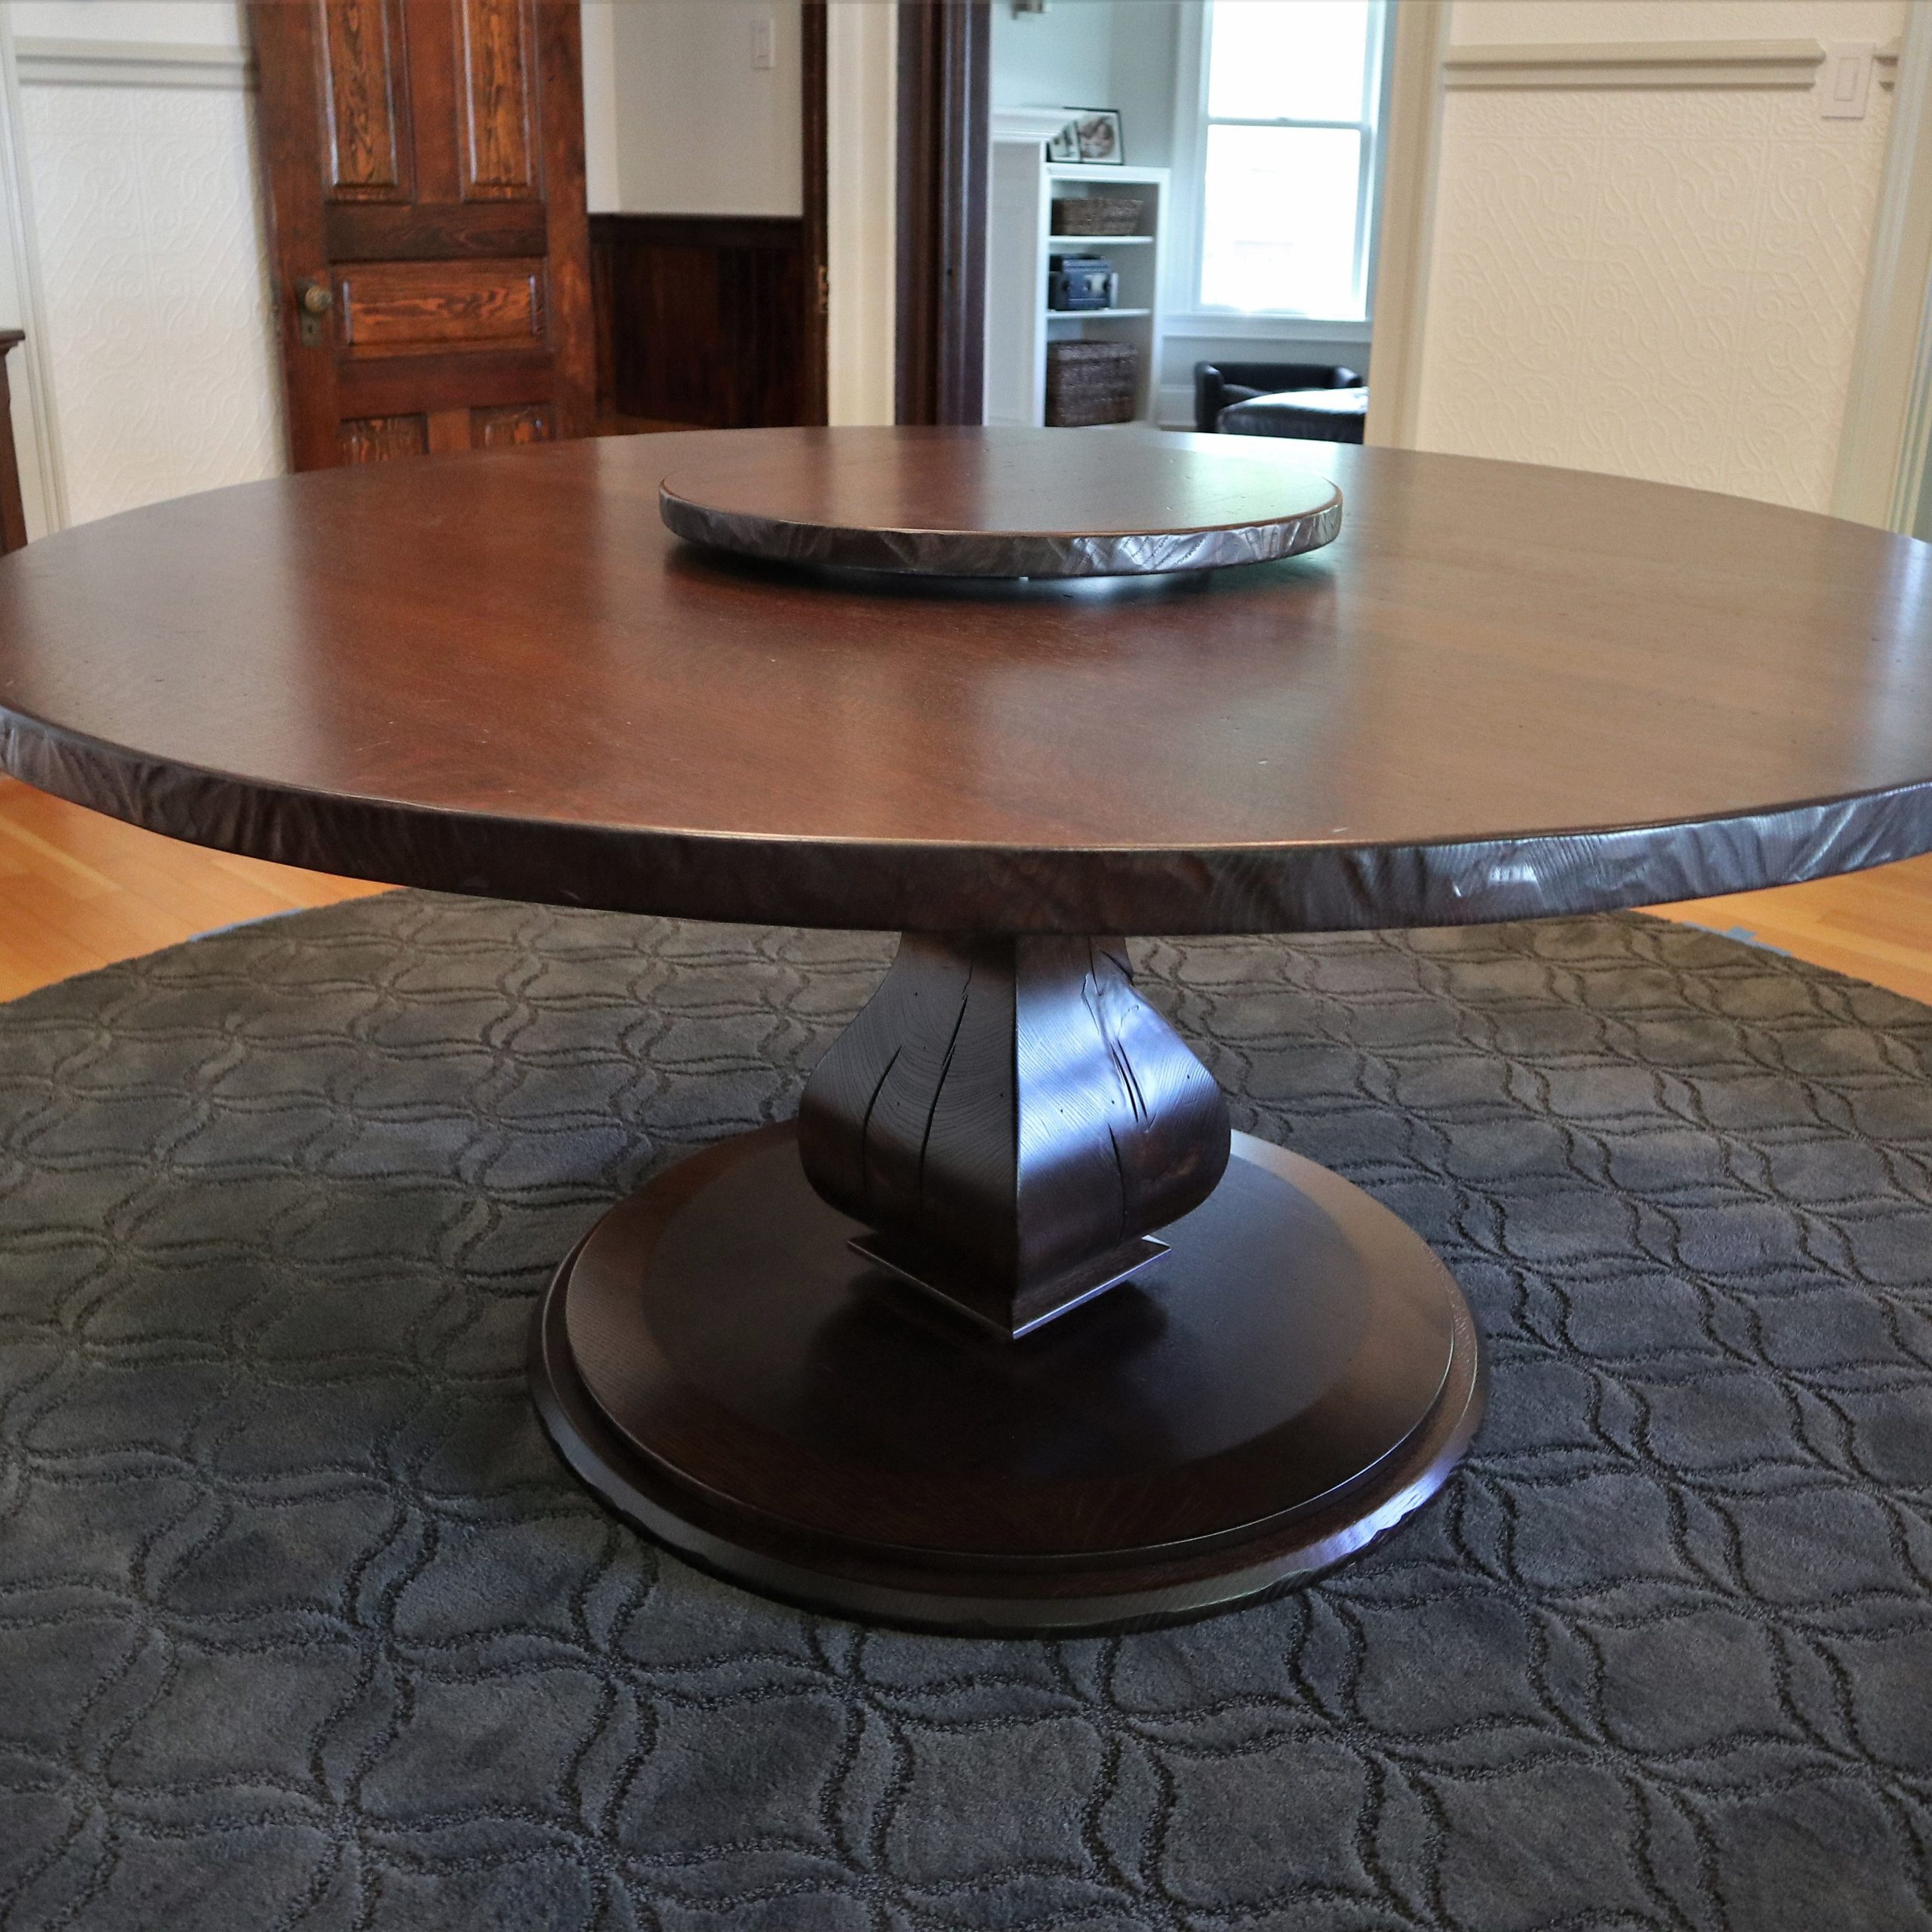 A Great Accessory To Any Of Our Handcrafted Tables: A Lazy Throughout Best And Newest Canalou 46'' Pedestal Dining Tables (View 12 of 15)